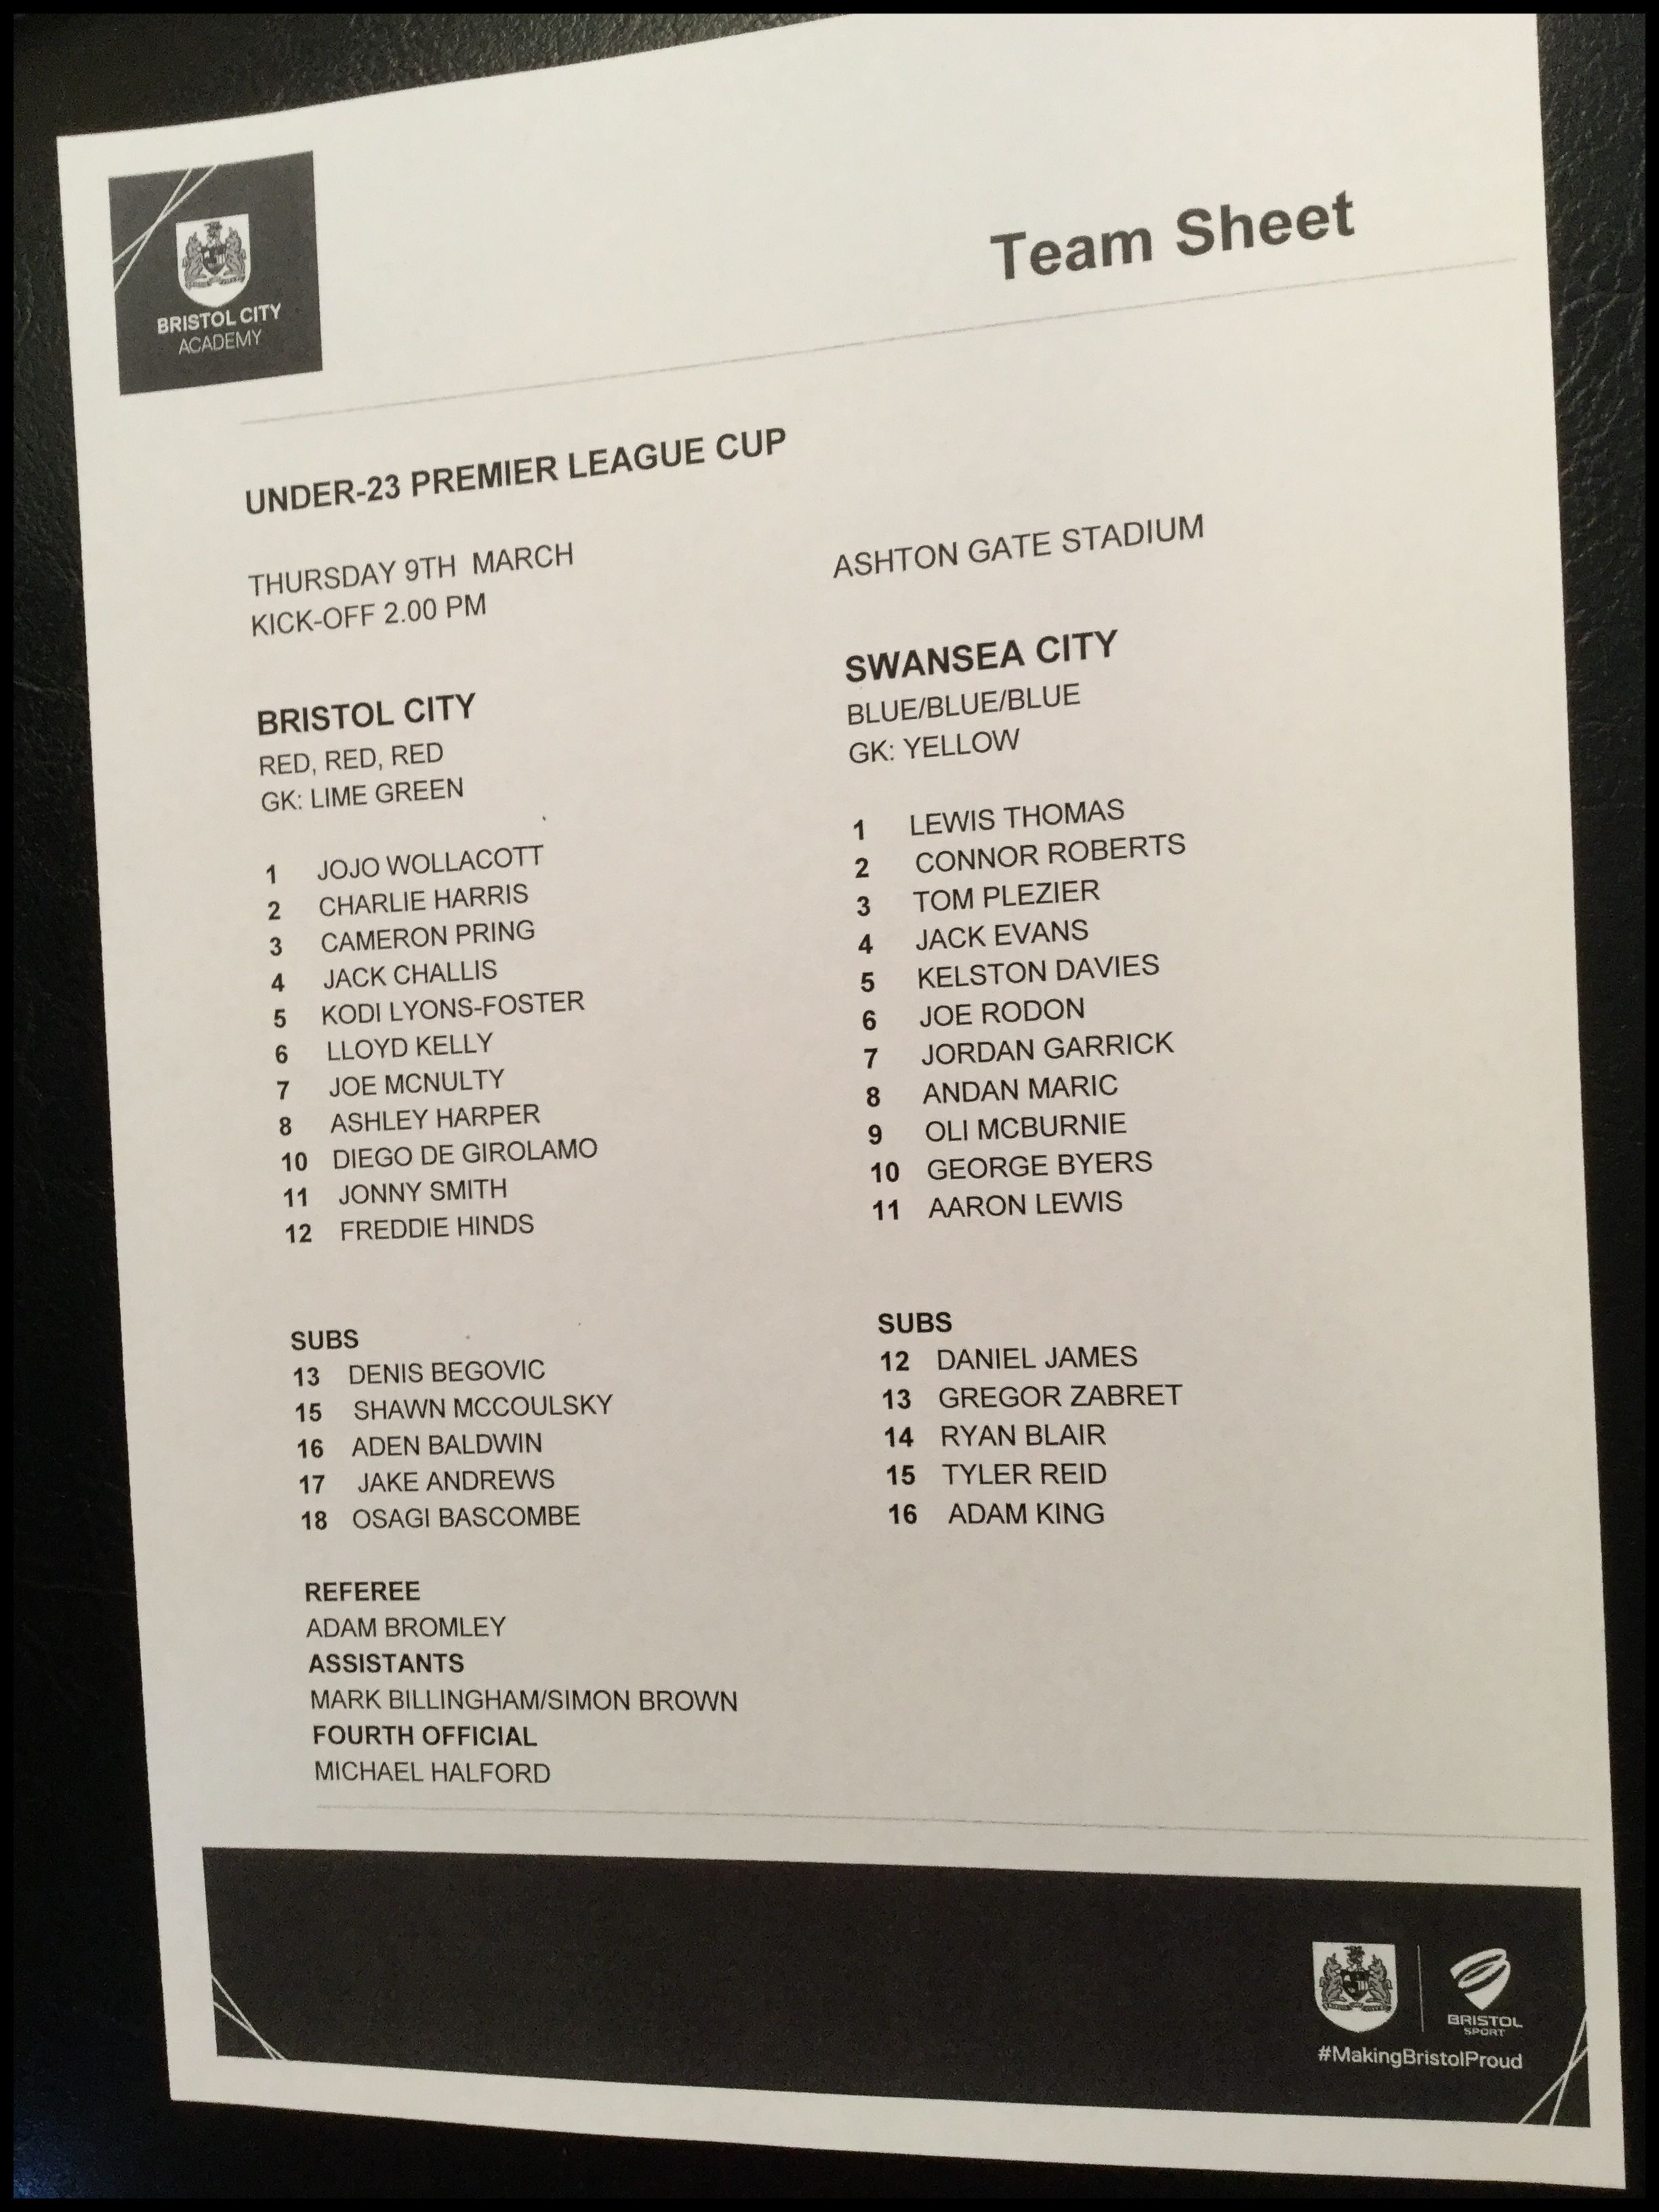 Bristol City v Swansea City 09-03-17 Team Sheet